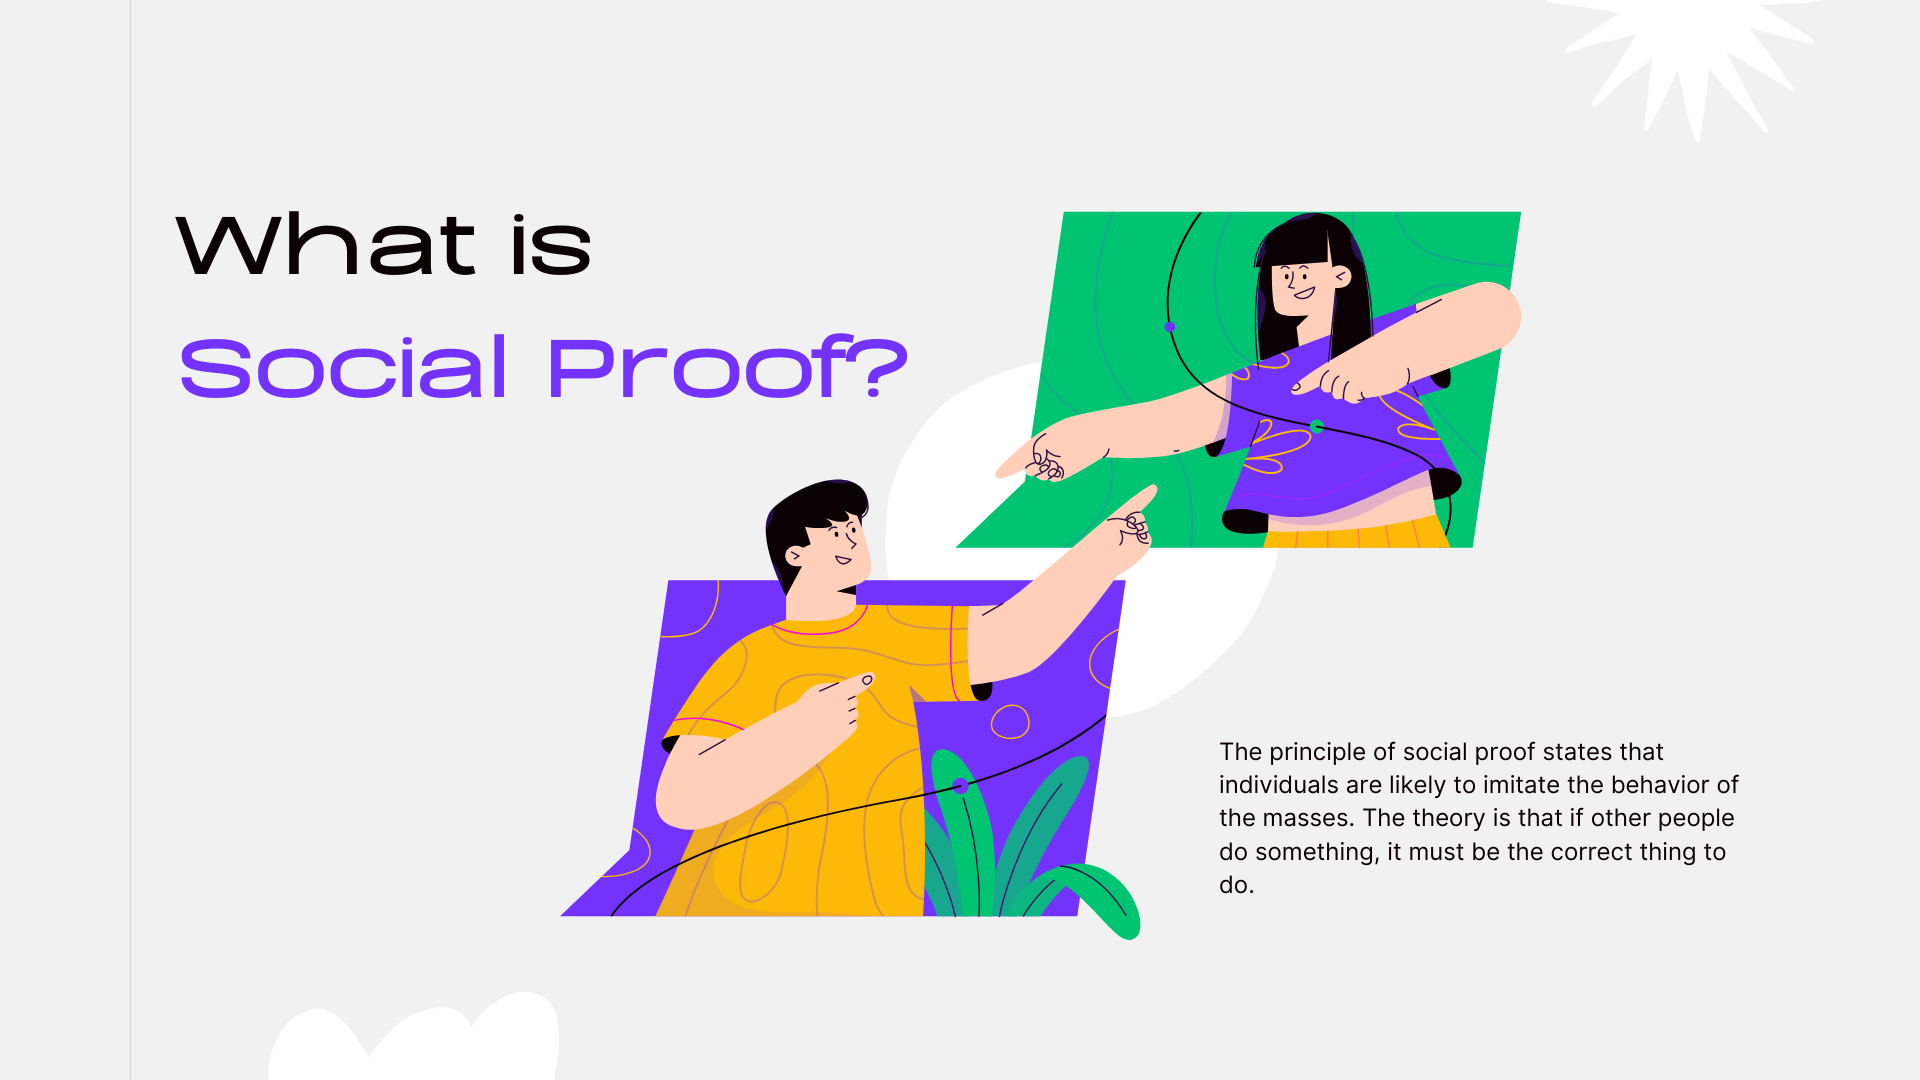 What is social proof marketing